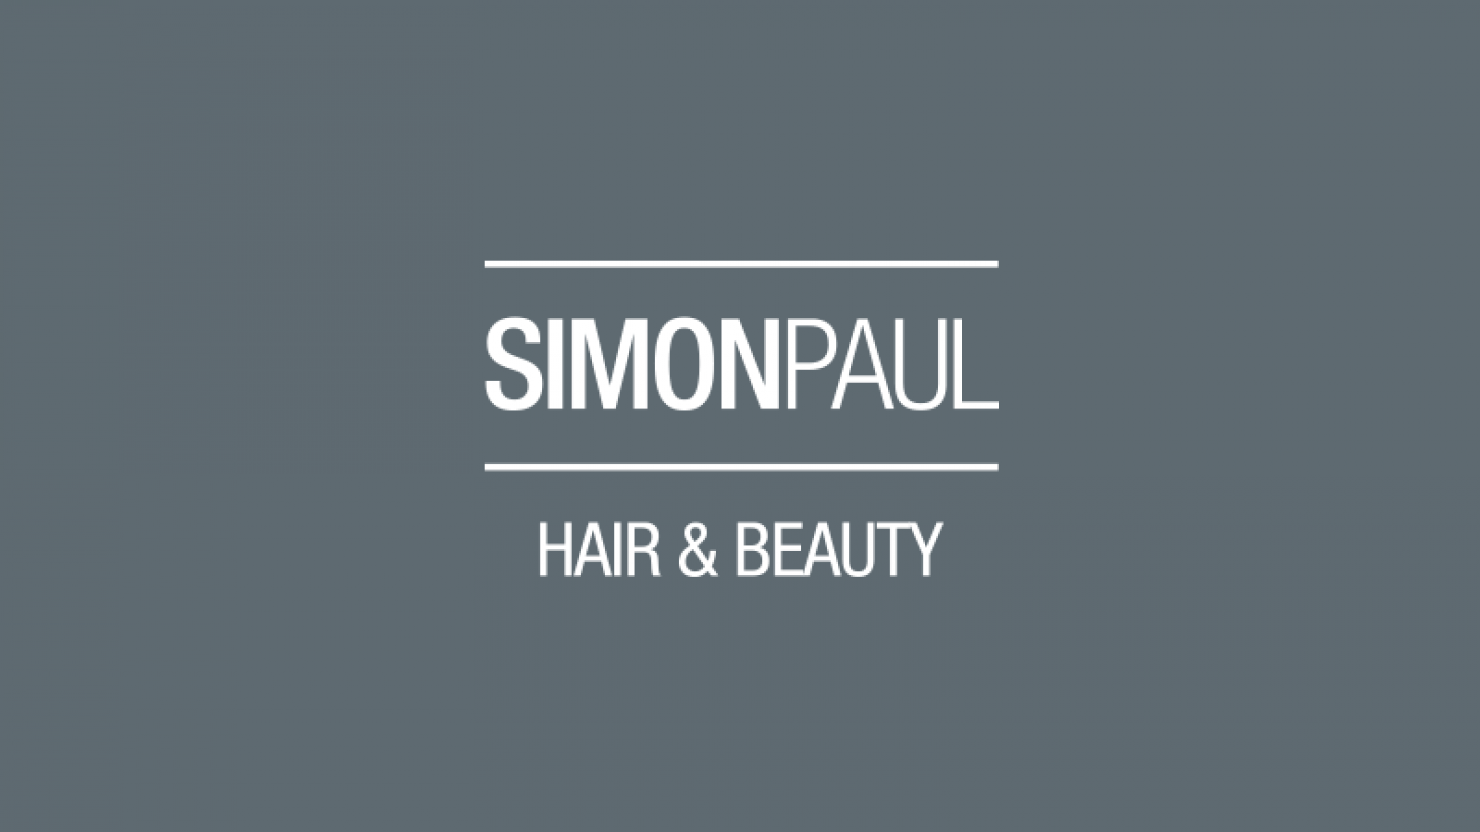 Logo design and branding for Simon Paul Hair Solihull